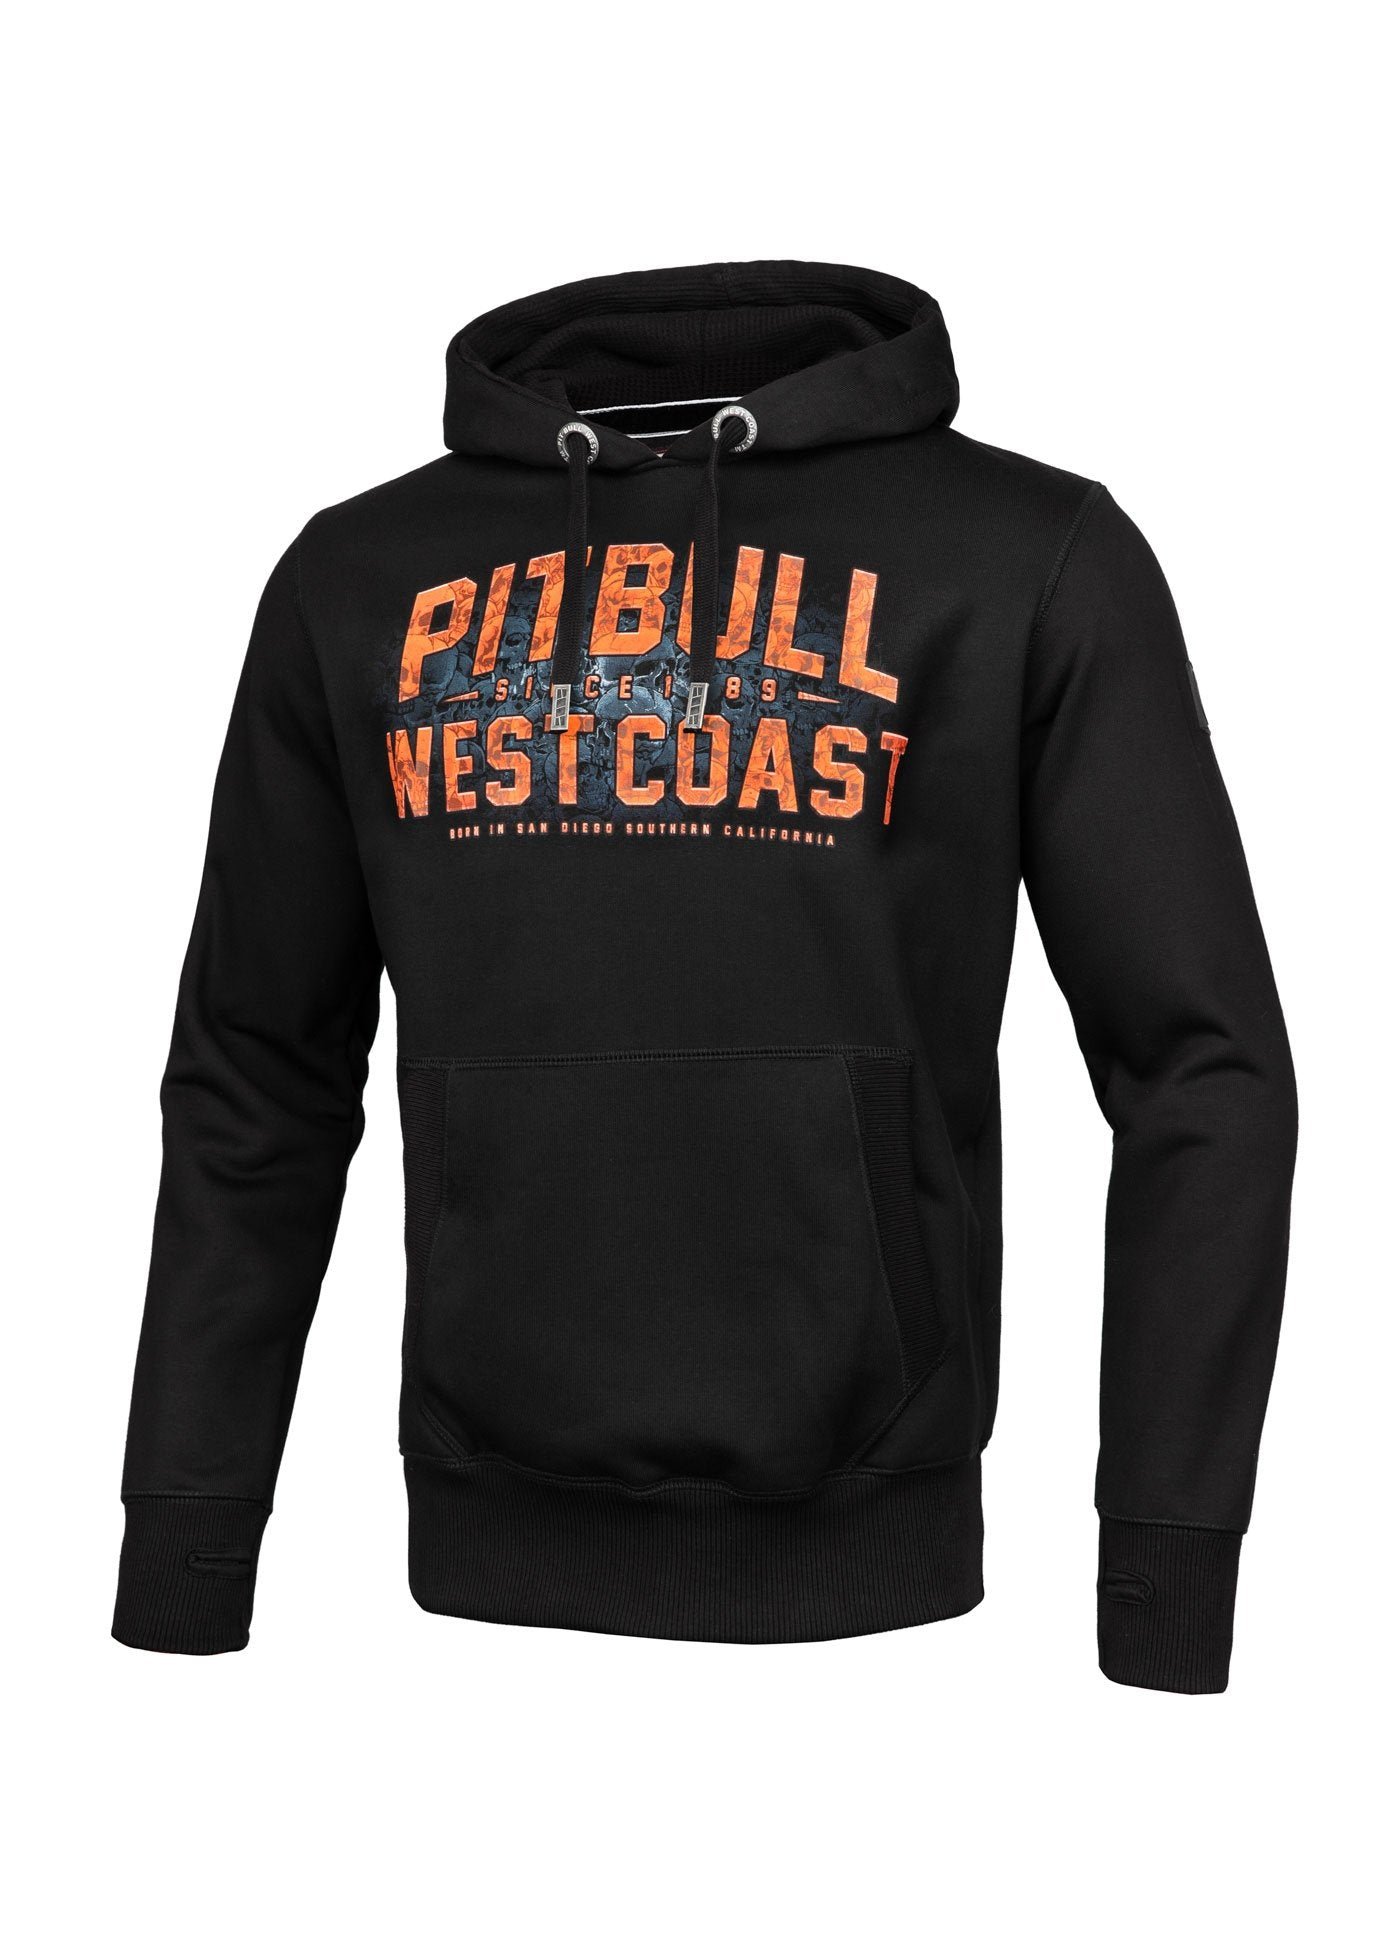 SKULL DOG 2019 HOODIE BLACK - pitbullwestcoast